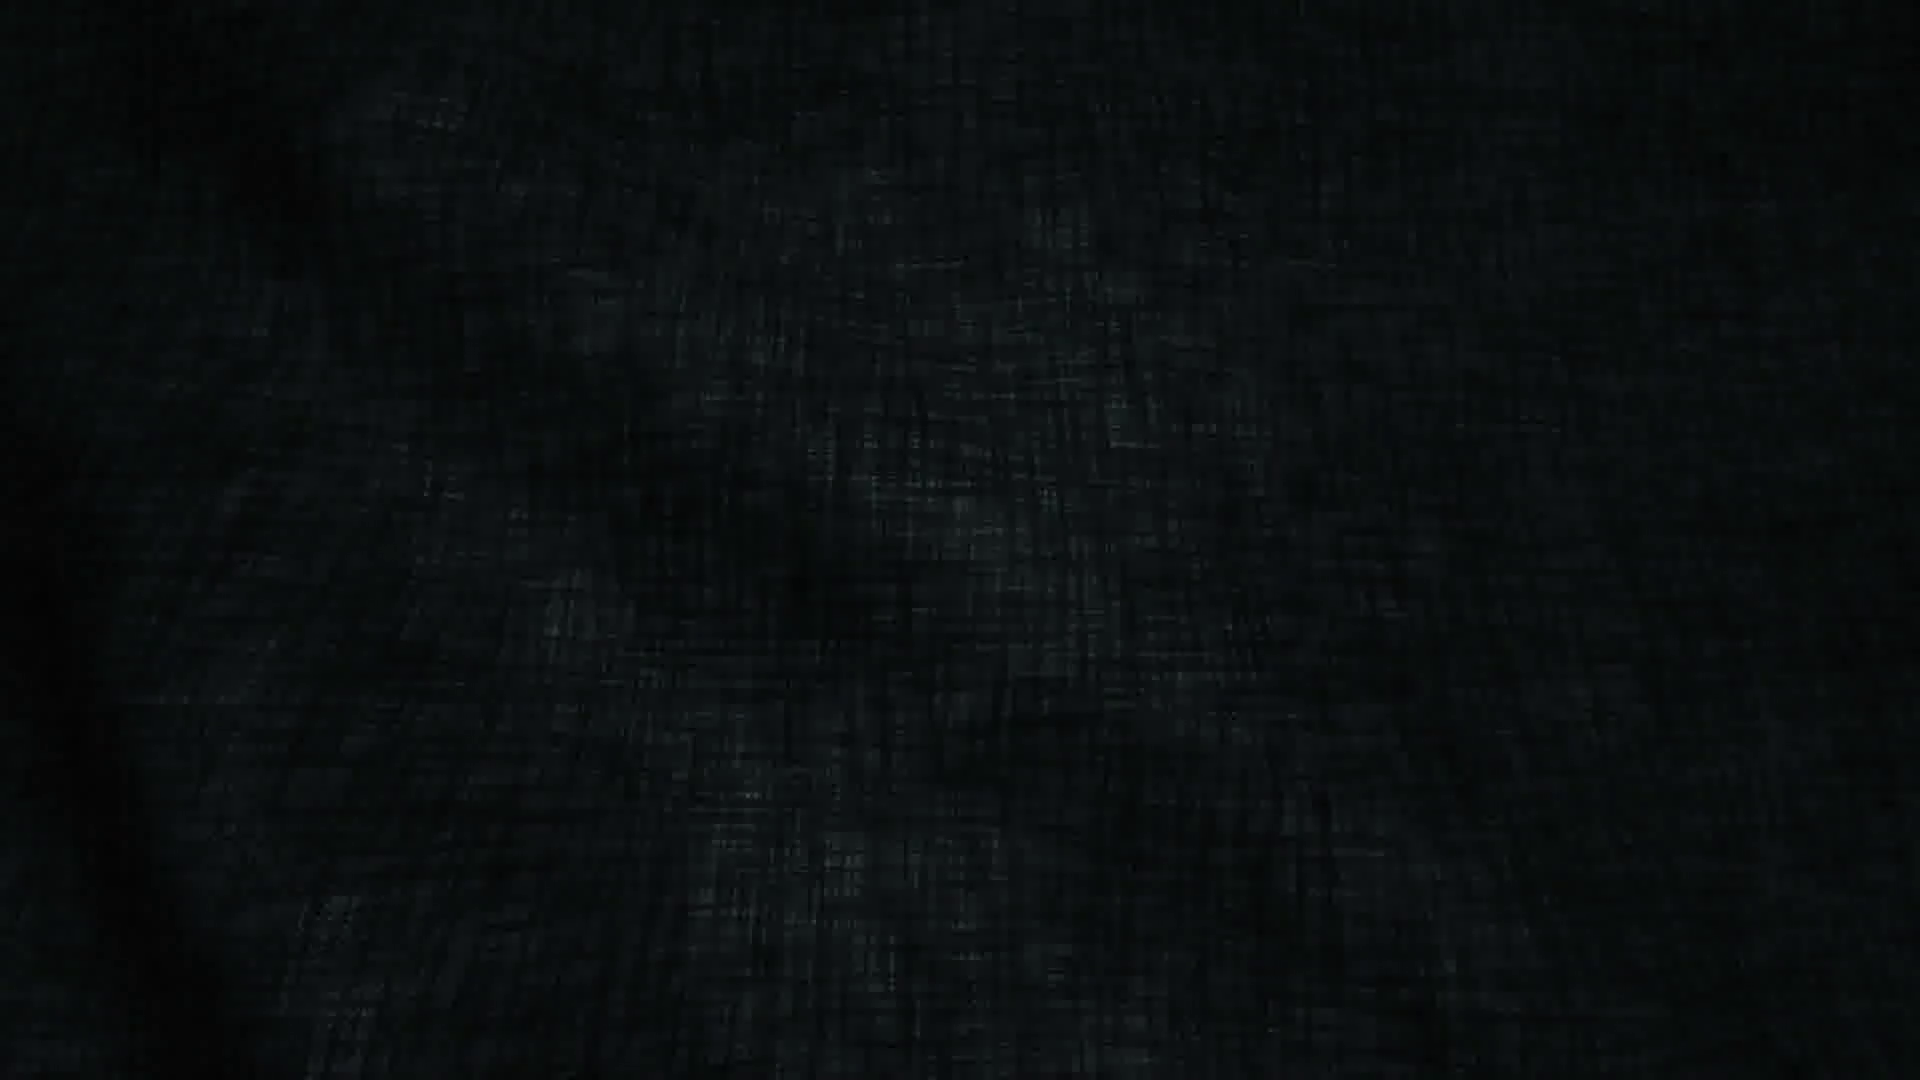 seamless-loop-with-highly-detailed-black-fabric-texture-loop-ready-in-4k-resolution_sqllo25o_thumbnail-full01.png